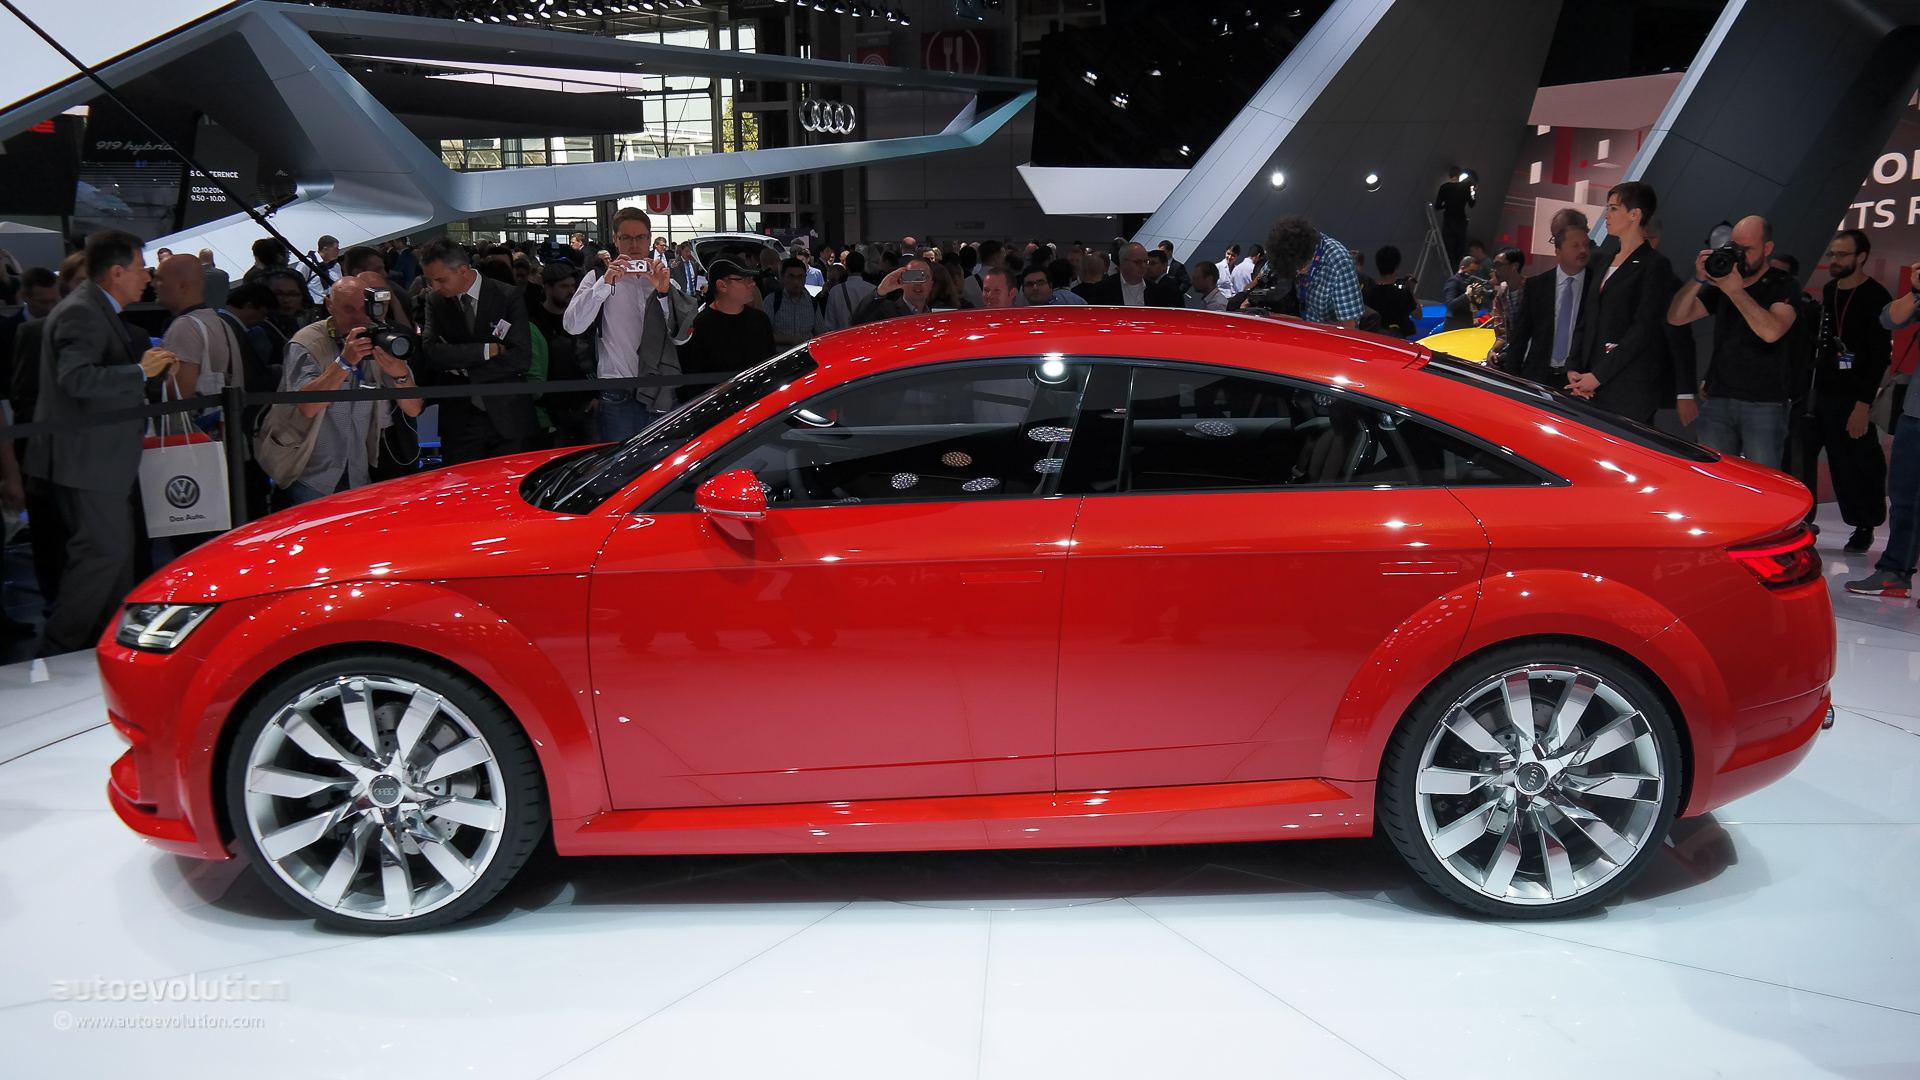 Towbin Dodge Used Cars 2015 audi a3 clubsport quattro concept images photo audi a3 Car Tuning